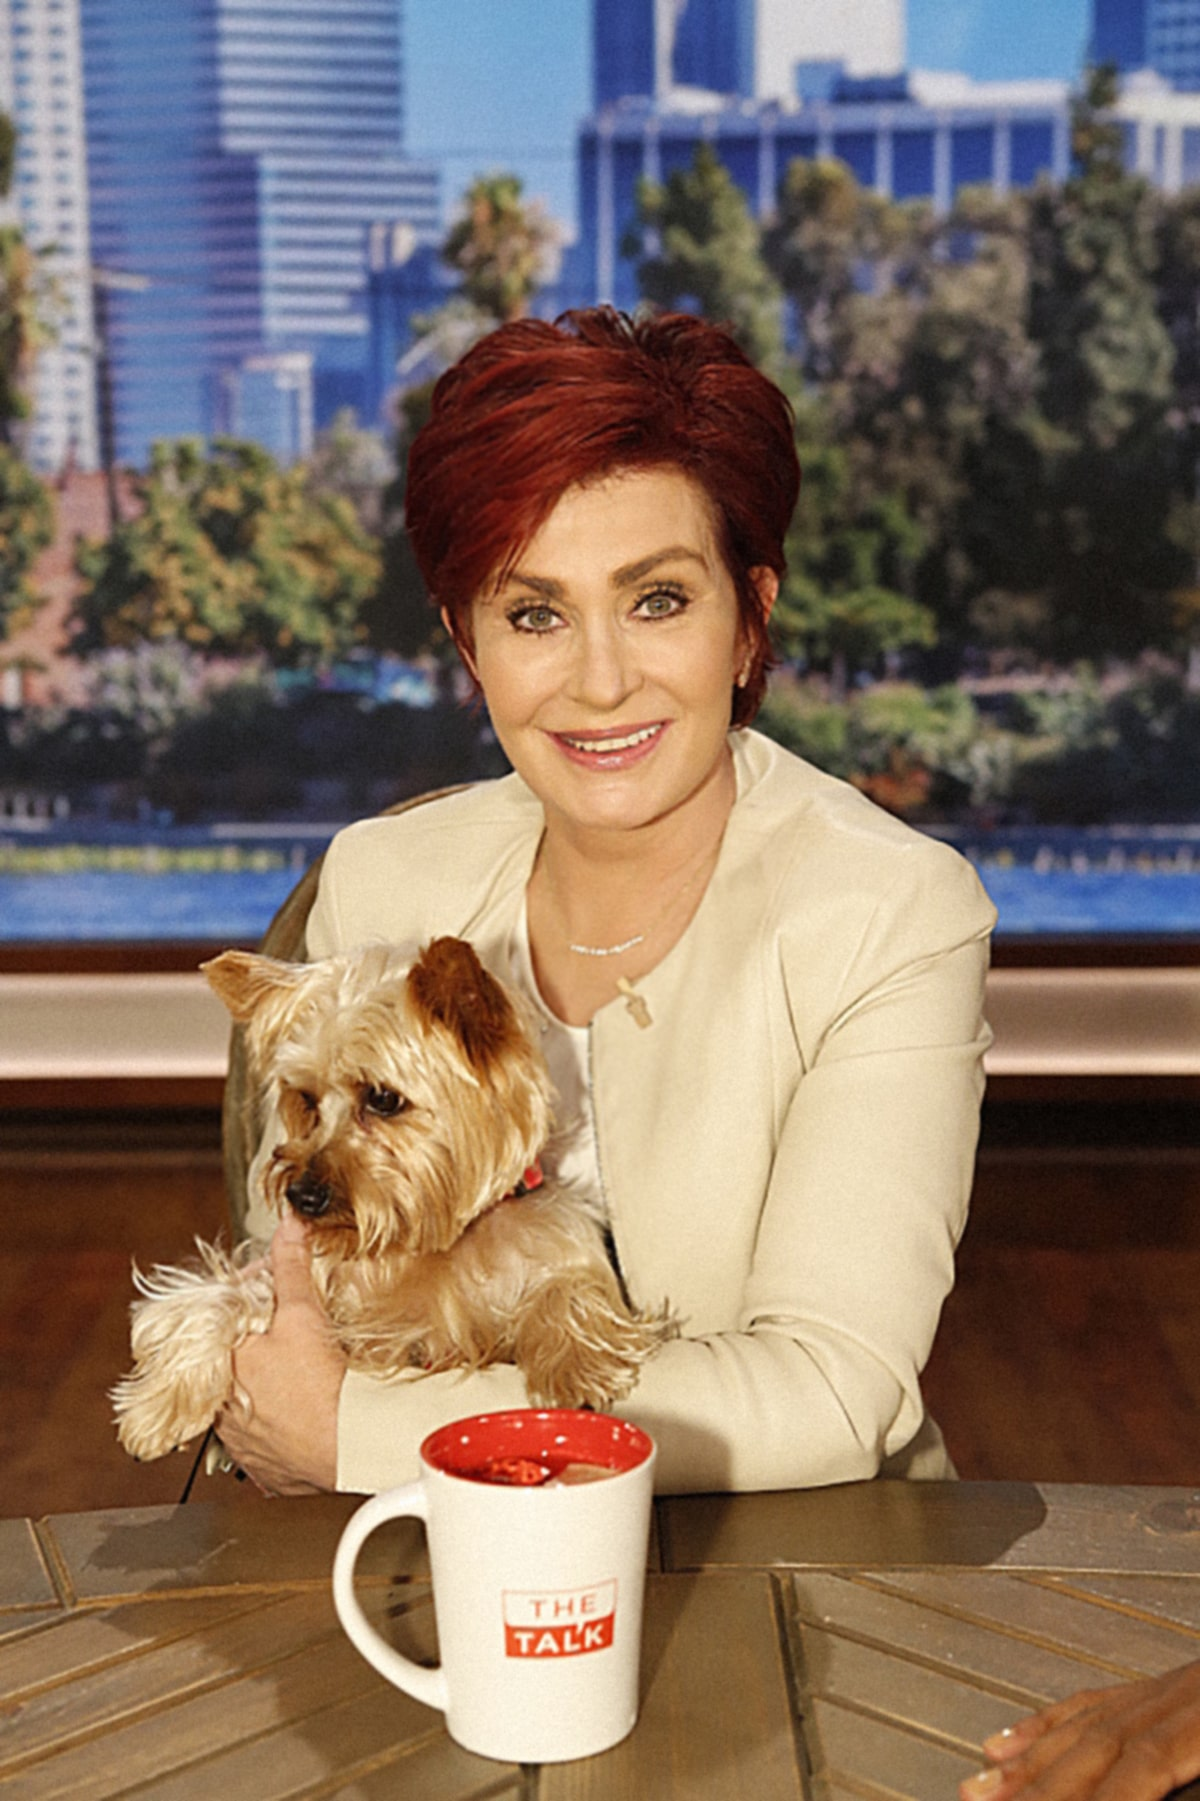 THE TALK, (from left): co-host Sharon Osbourne with her dog, Charlie